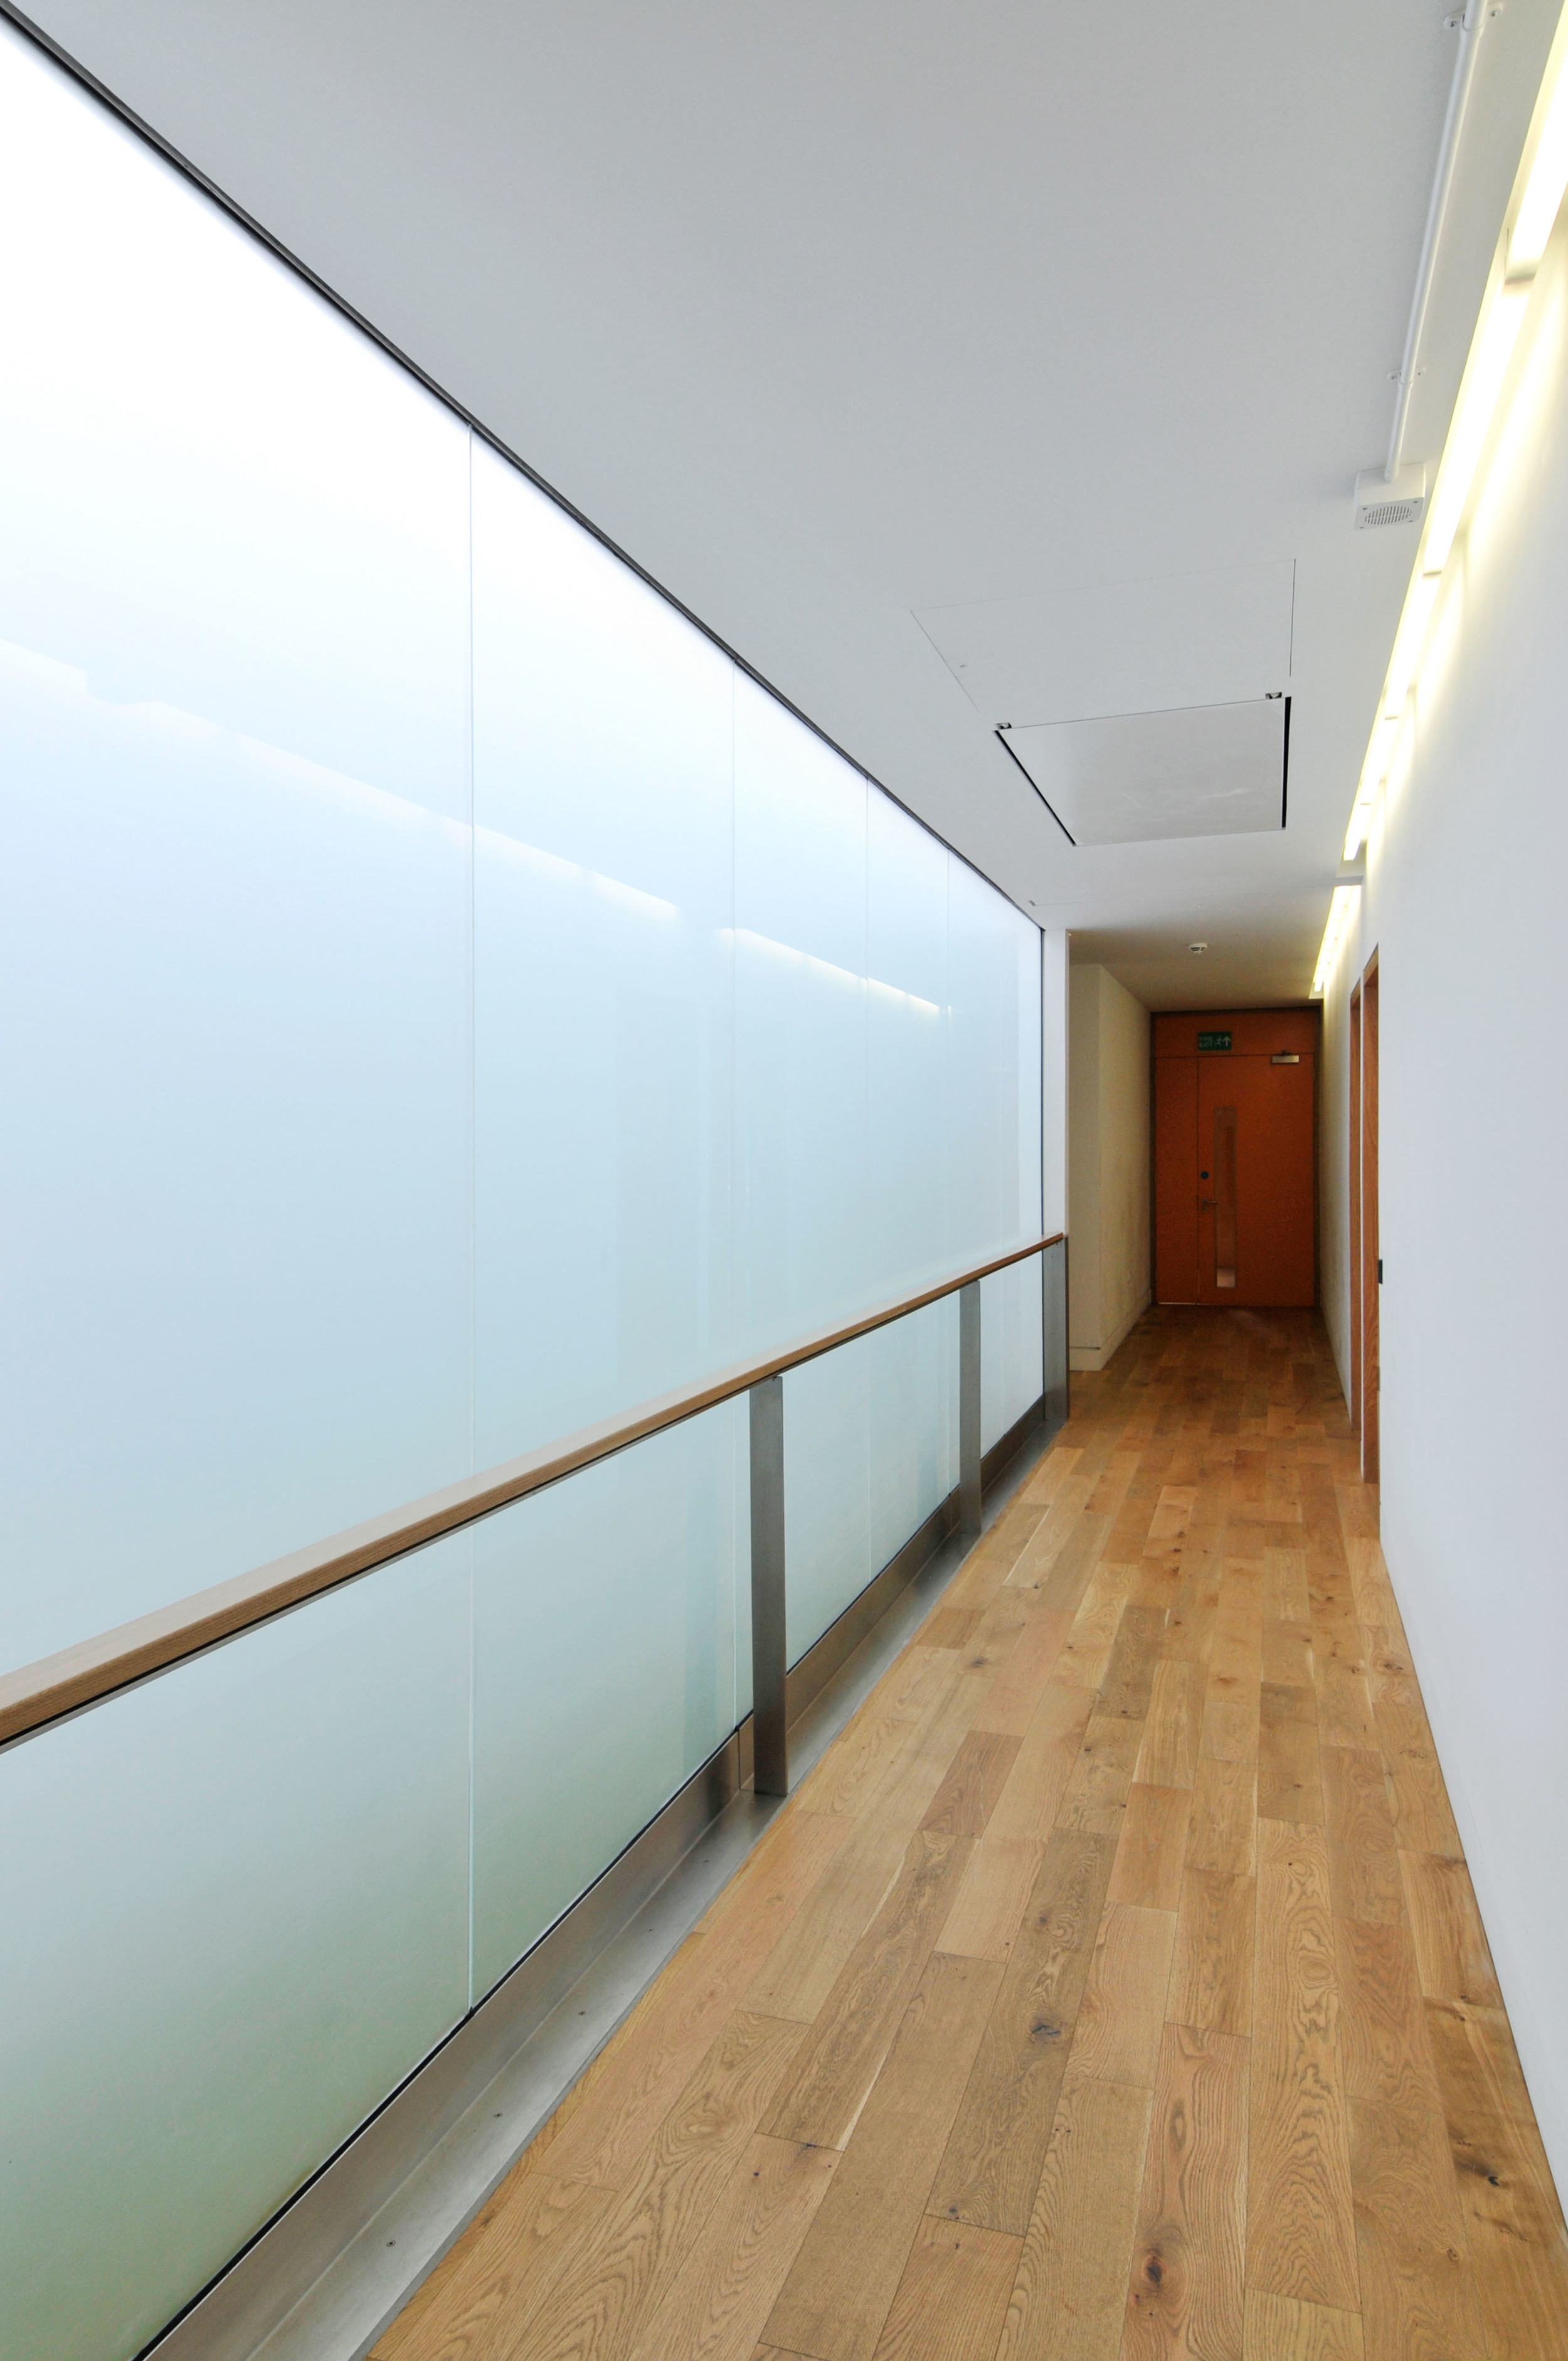 Corridor leading to meeting rooms in Hackney Marshes Centre